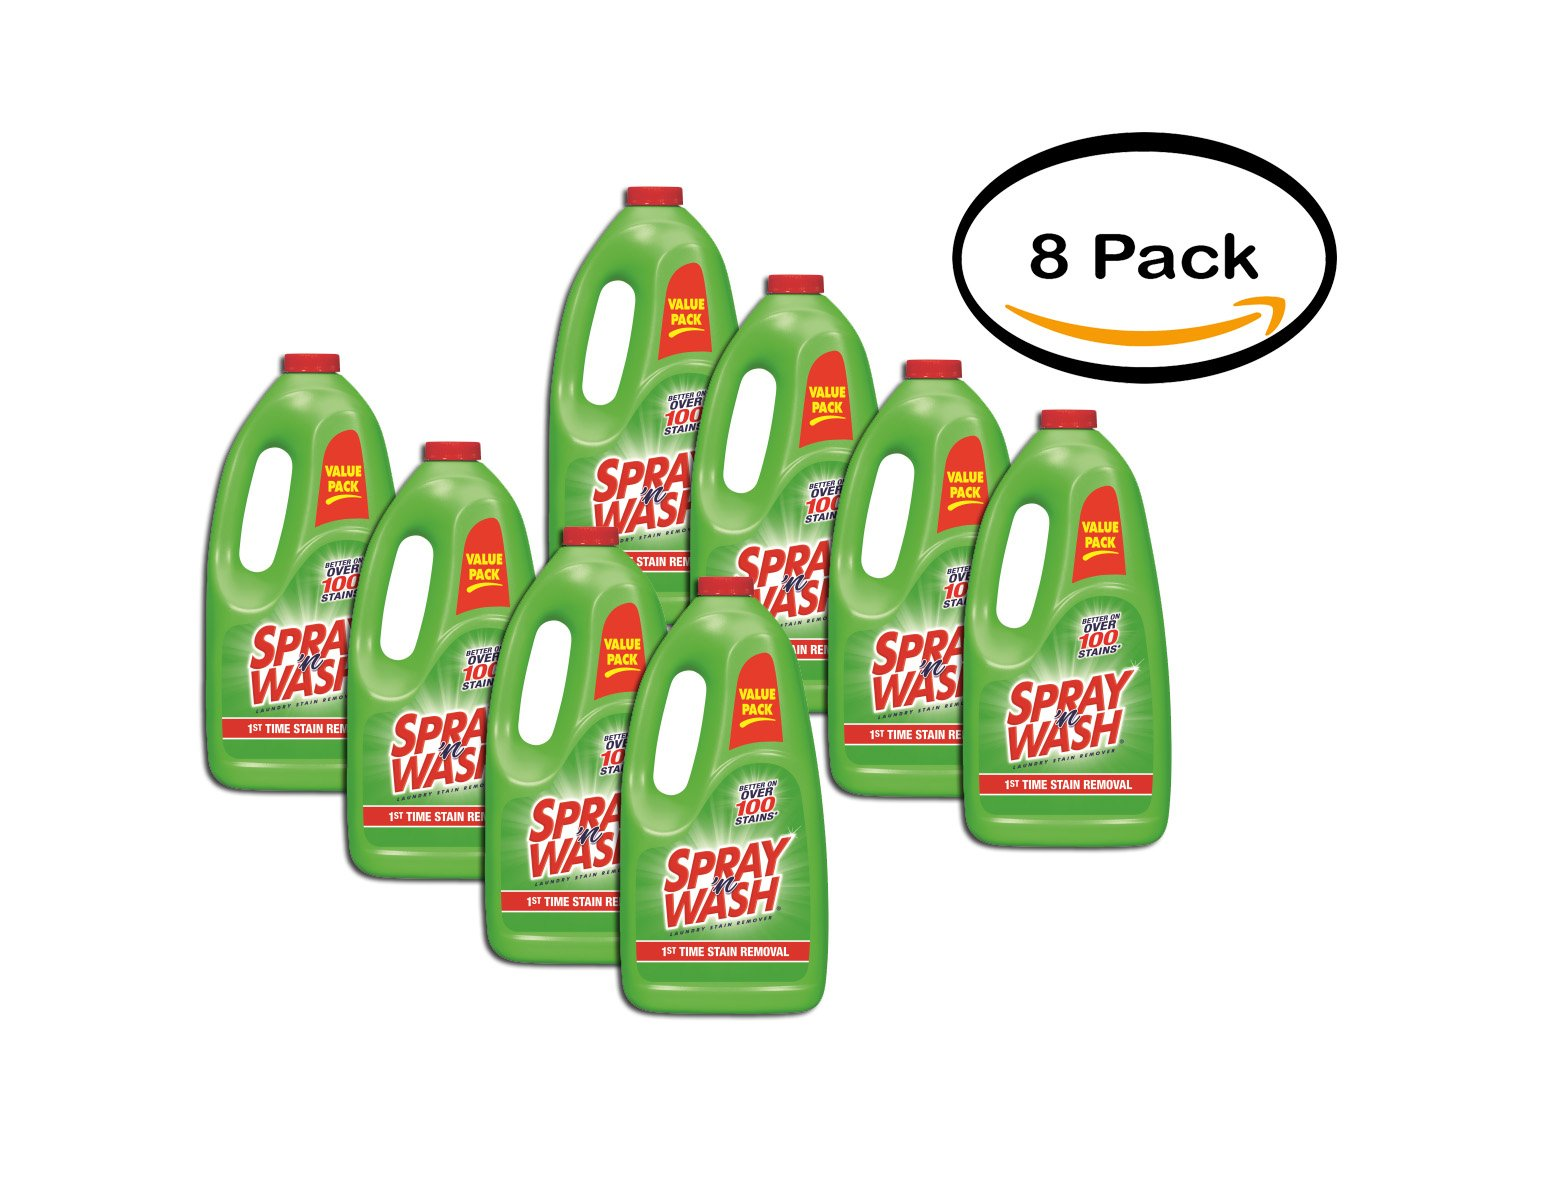 PACK OF 8 - Spray 'n Wash Pre-Treat Laundry Stain Remover Refill, 60 fl oz Bottle